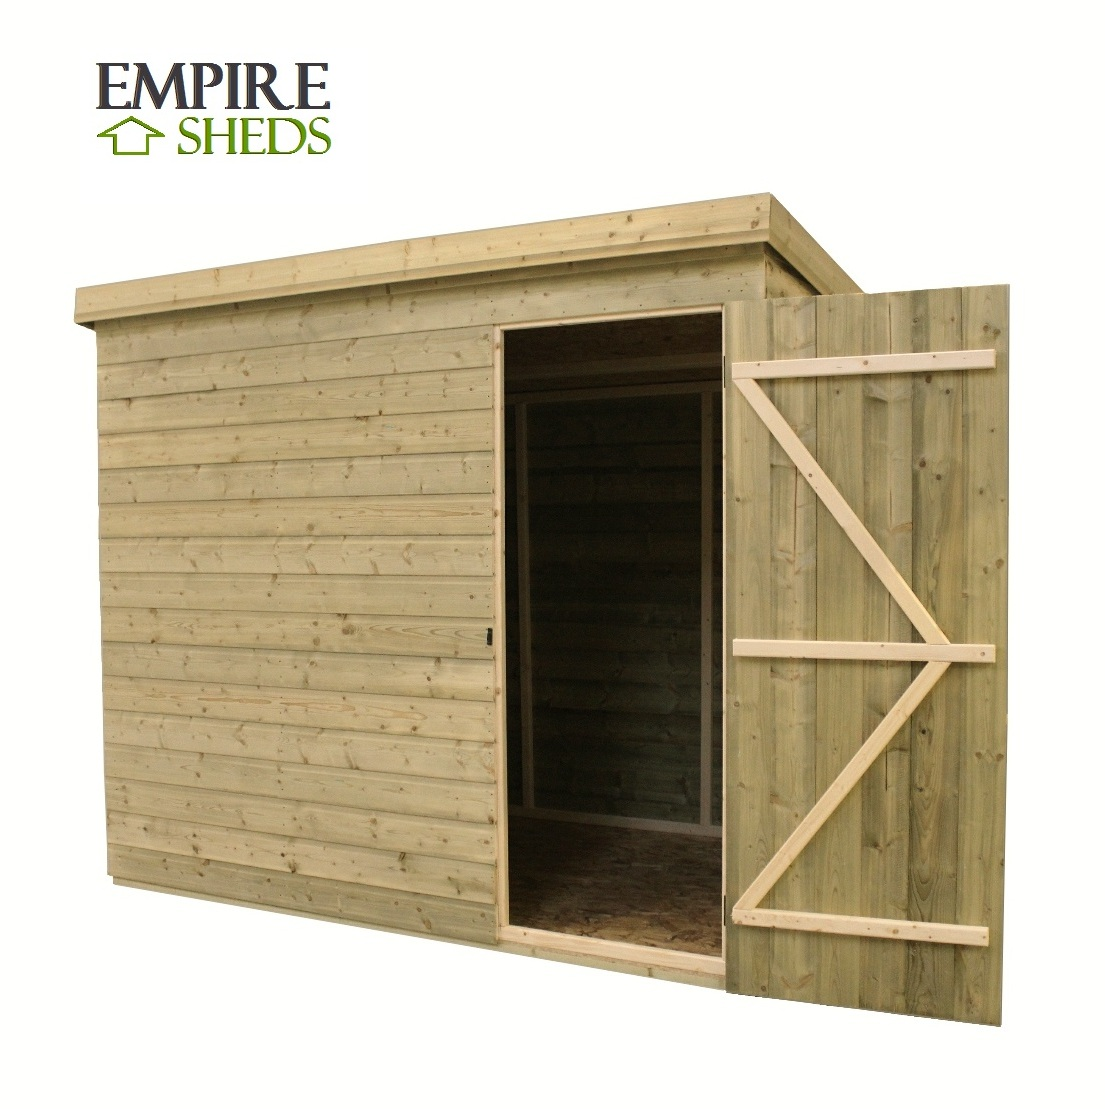 1109 #4E7F02 Zekaria: Build A Shed Floor Strength image Shed Doors And Windows 41331105